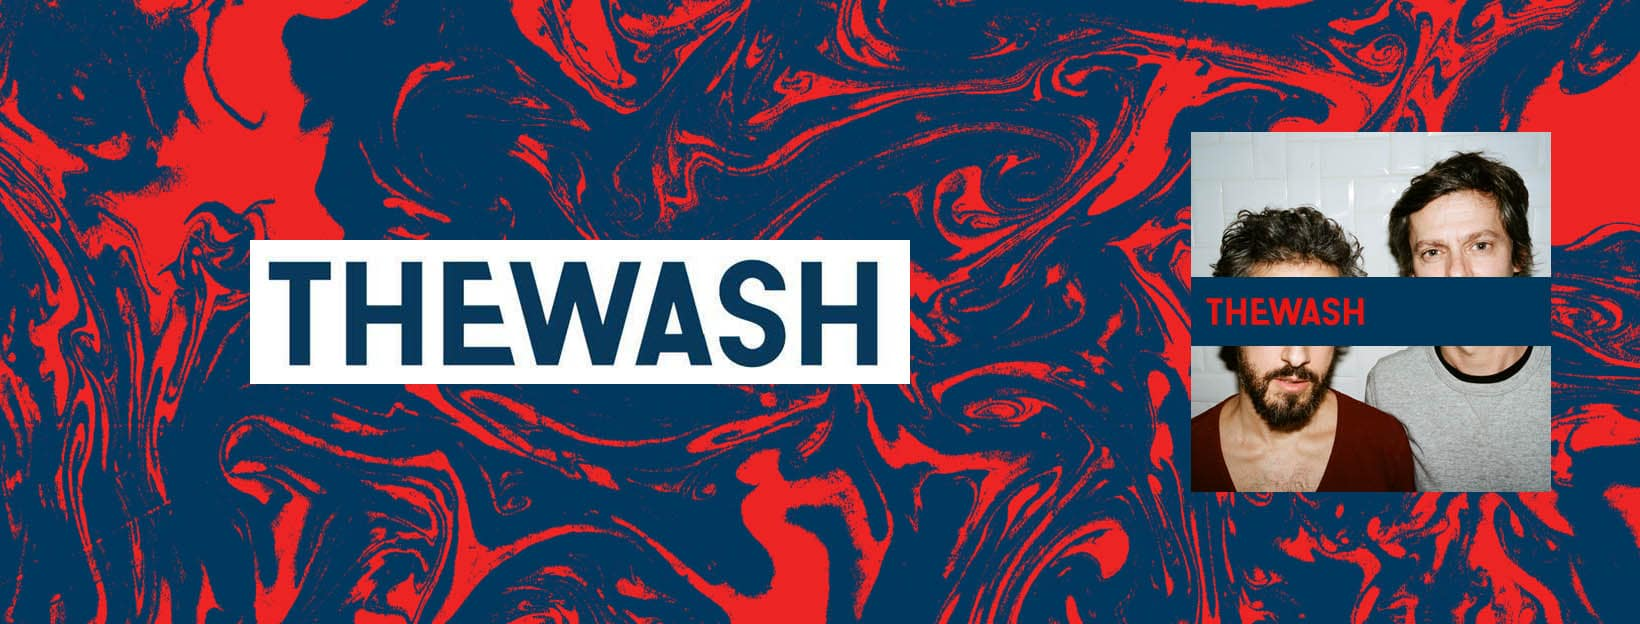 The Wash annonce leur premier album, JUST ENOUGH PLEASURE TO REMEMBER